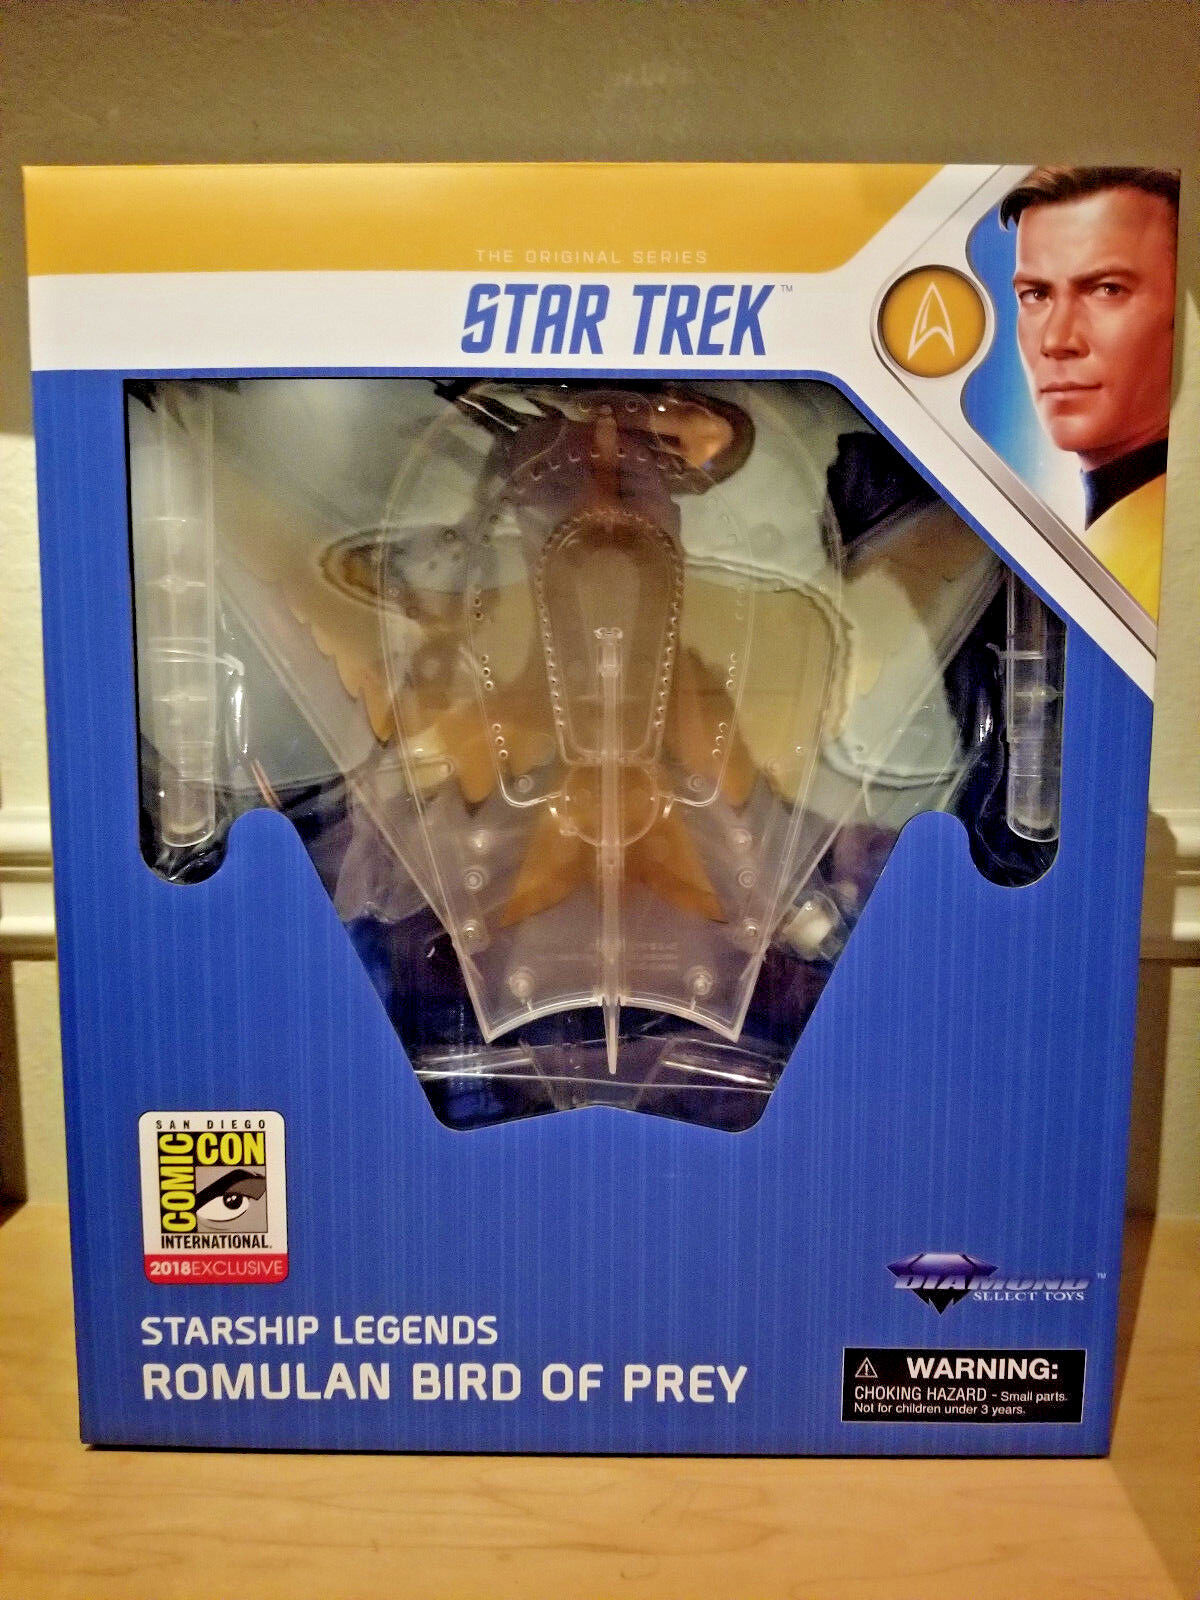 Sdcc 2018 Estrella TREK ROMULANO Ave de presa ocultos Diamond Select Exclusivo